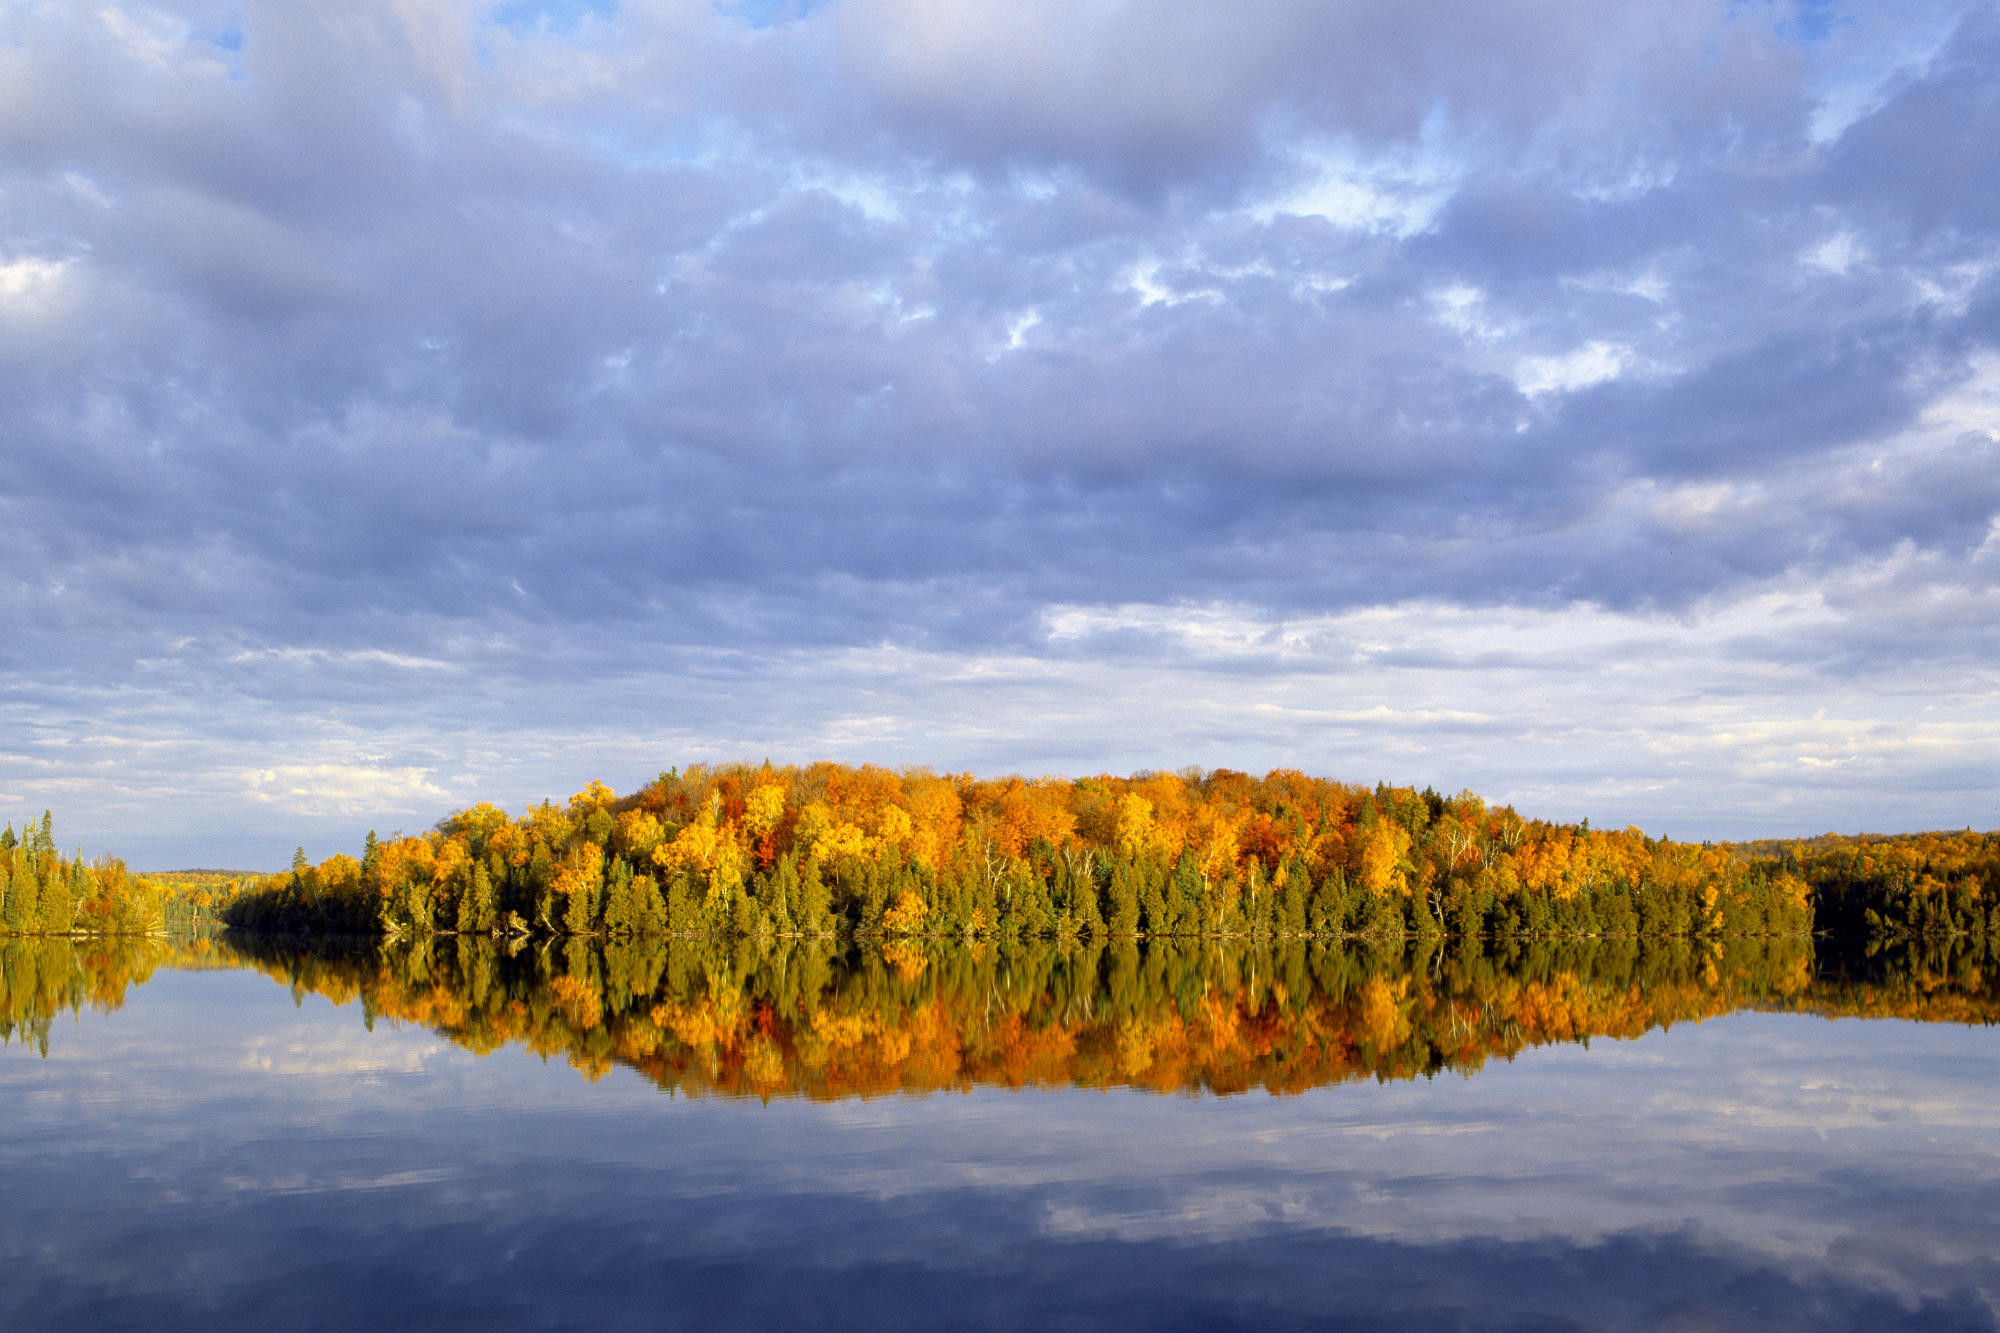 Fall Wallpaper For Windows Lake Superior Wallpaper 183 ①